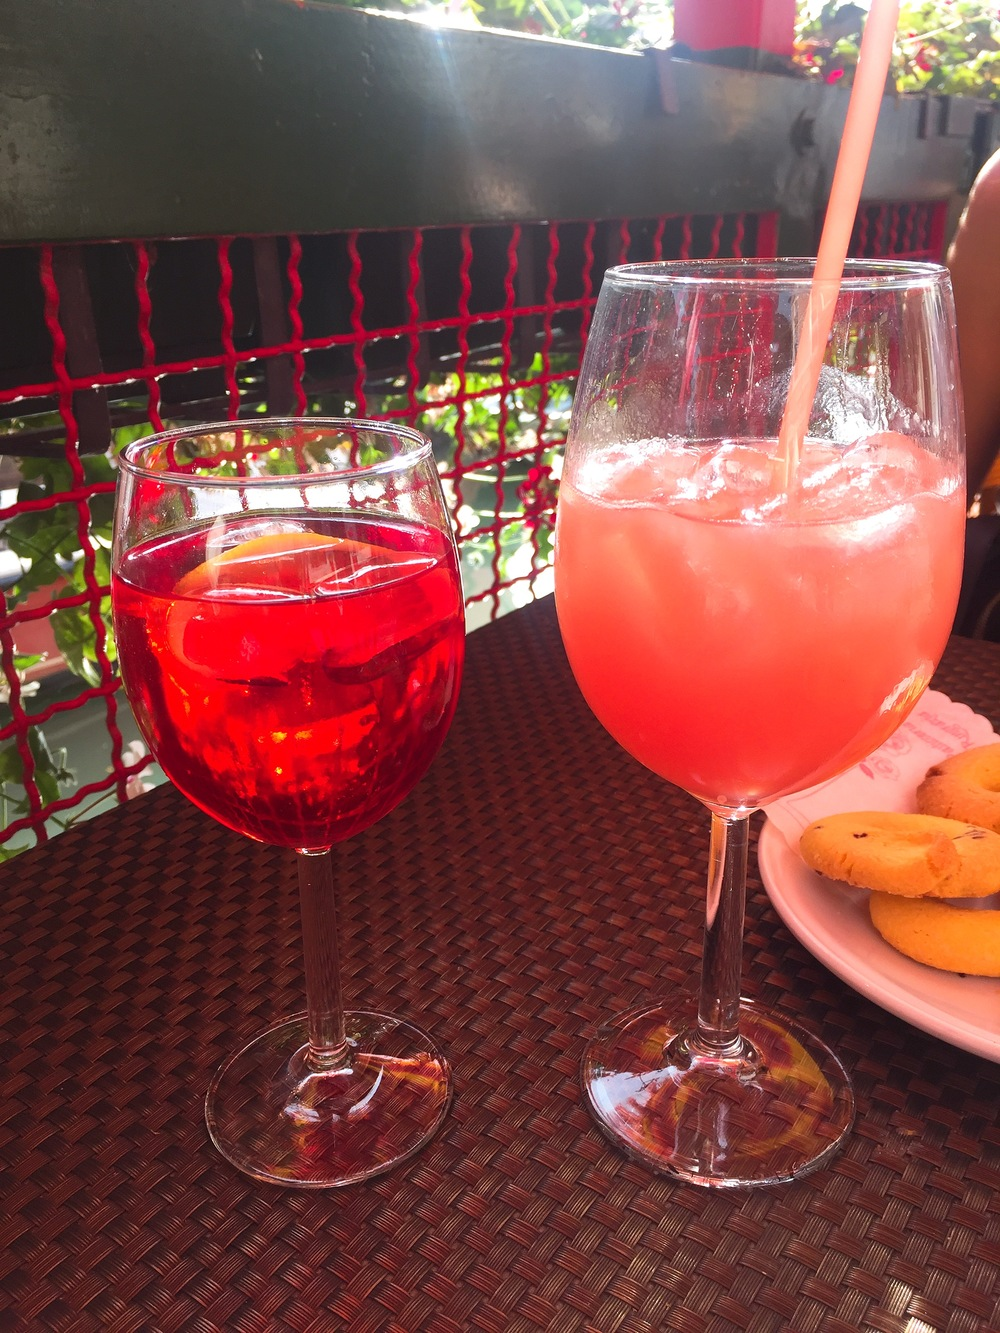 Bellinis in Venice - Travel Guide